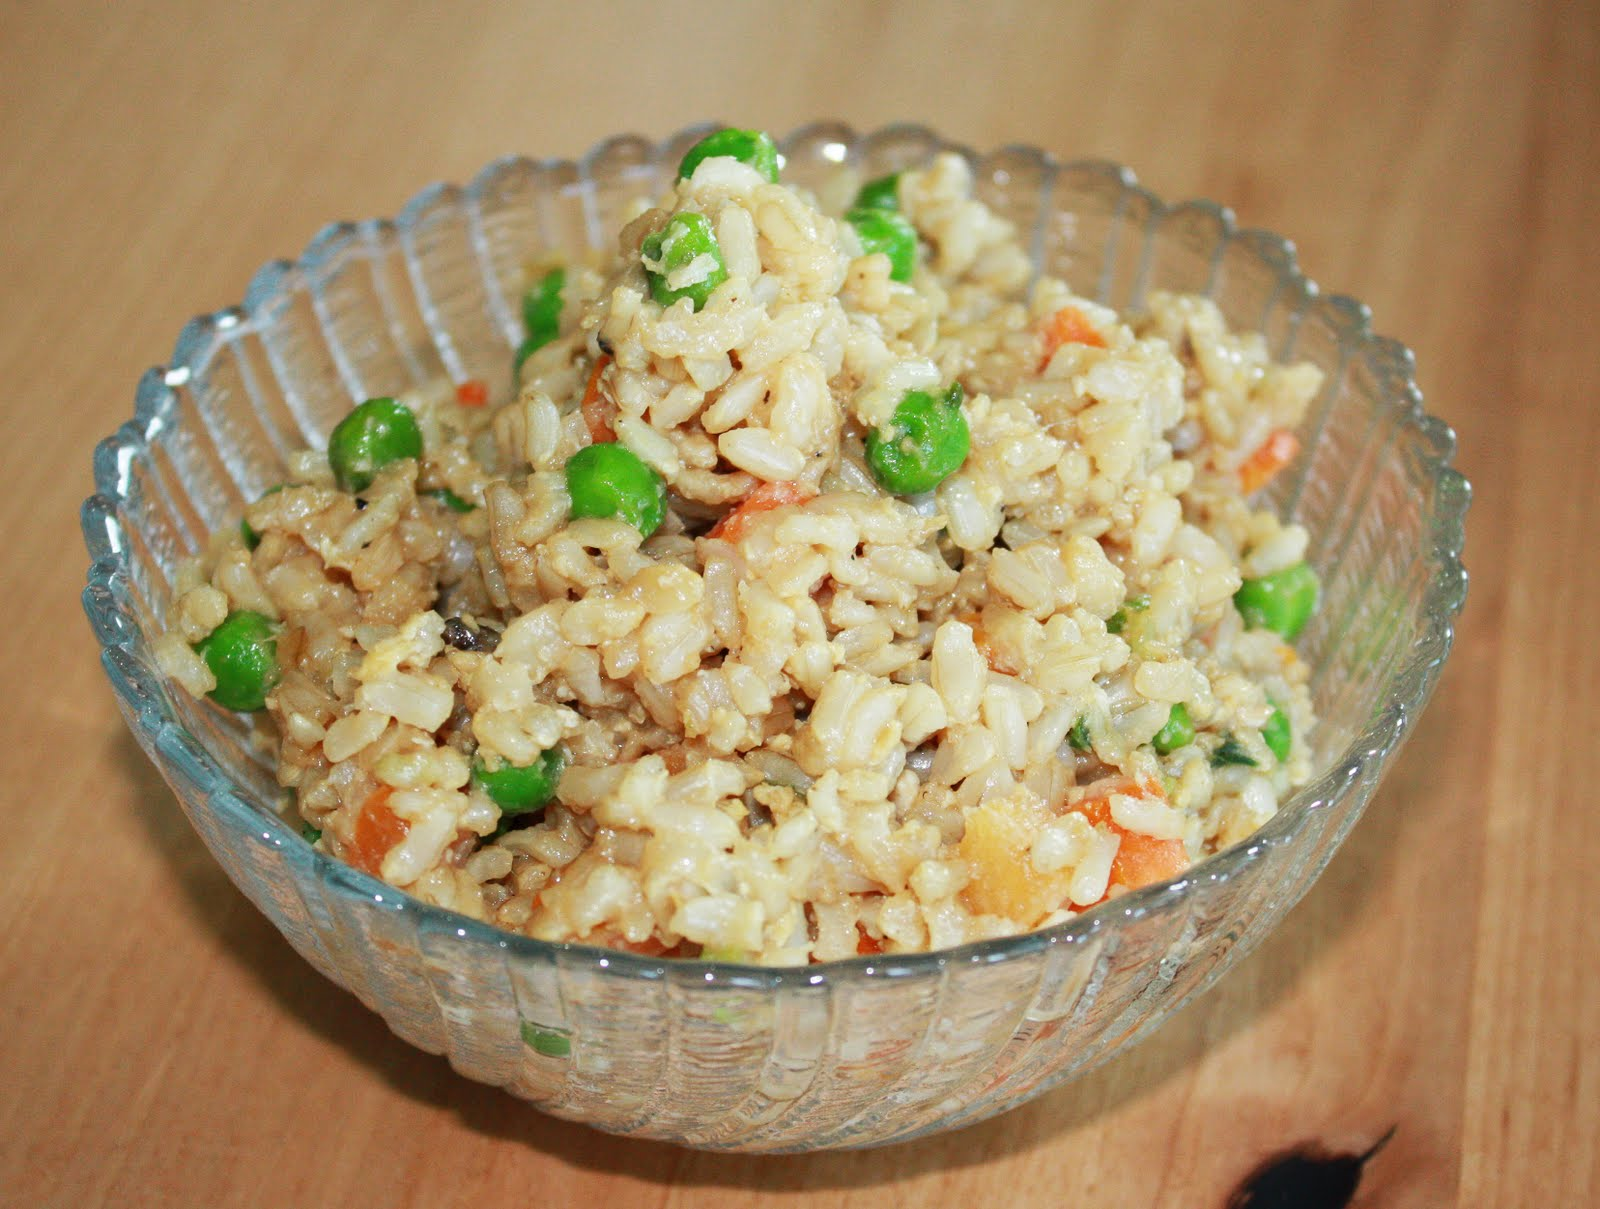 Healthy Brown How To Cook Brown Rice With 2 Cup Diced Green Onions (about 3